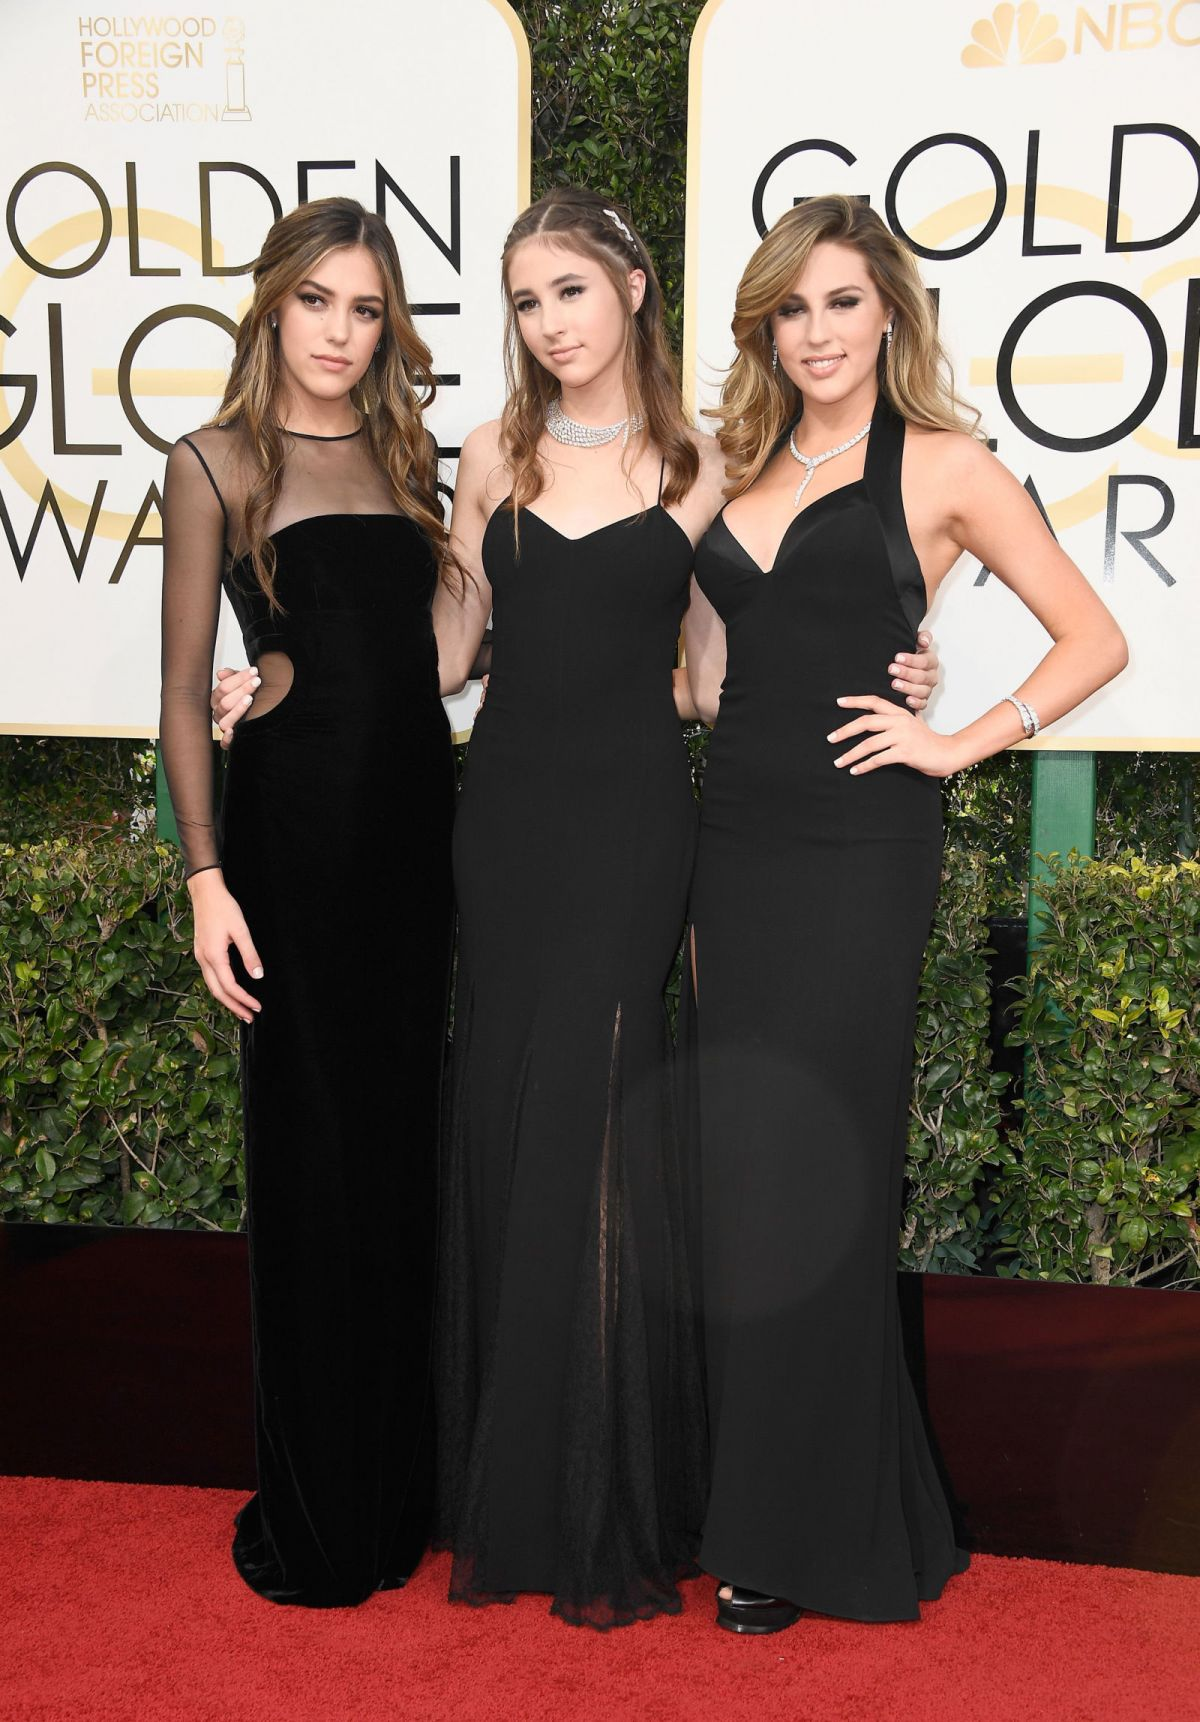 SISITNE, SOPHIA and SCARLET STALLONE at 74th Annual Golden Globe Awards in Beverly Hills 01/08/2017